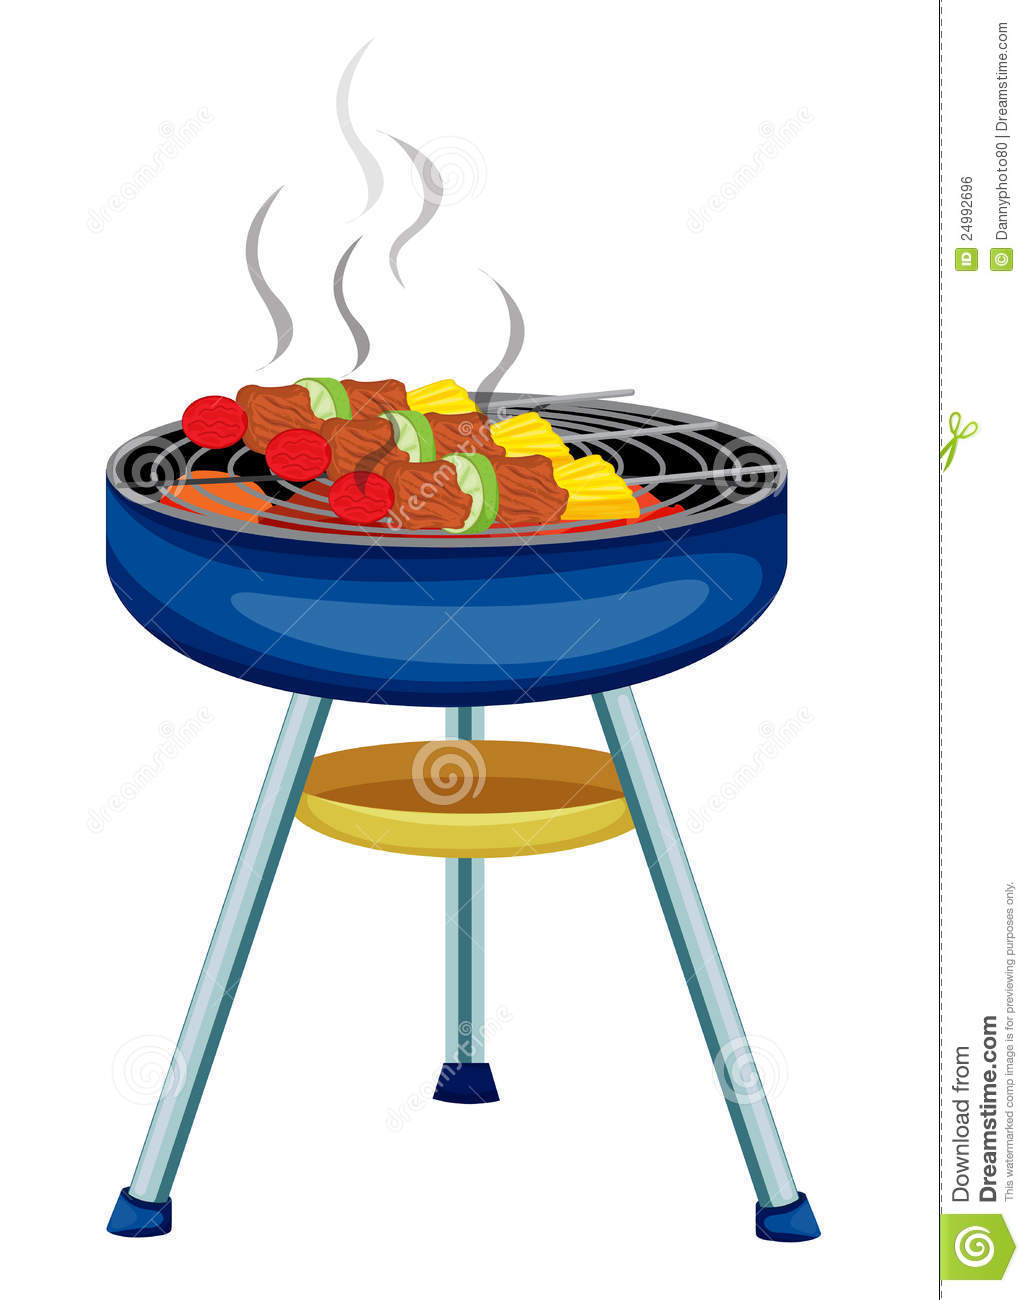 grill royalty free stock image image 24992696 barbeque clipart cartoon barbecue clipart